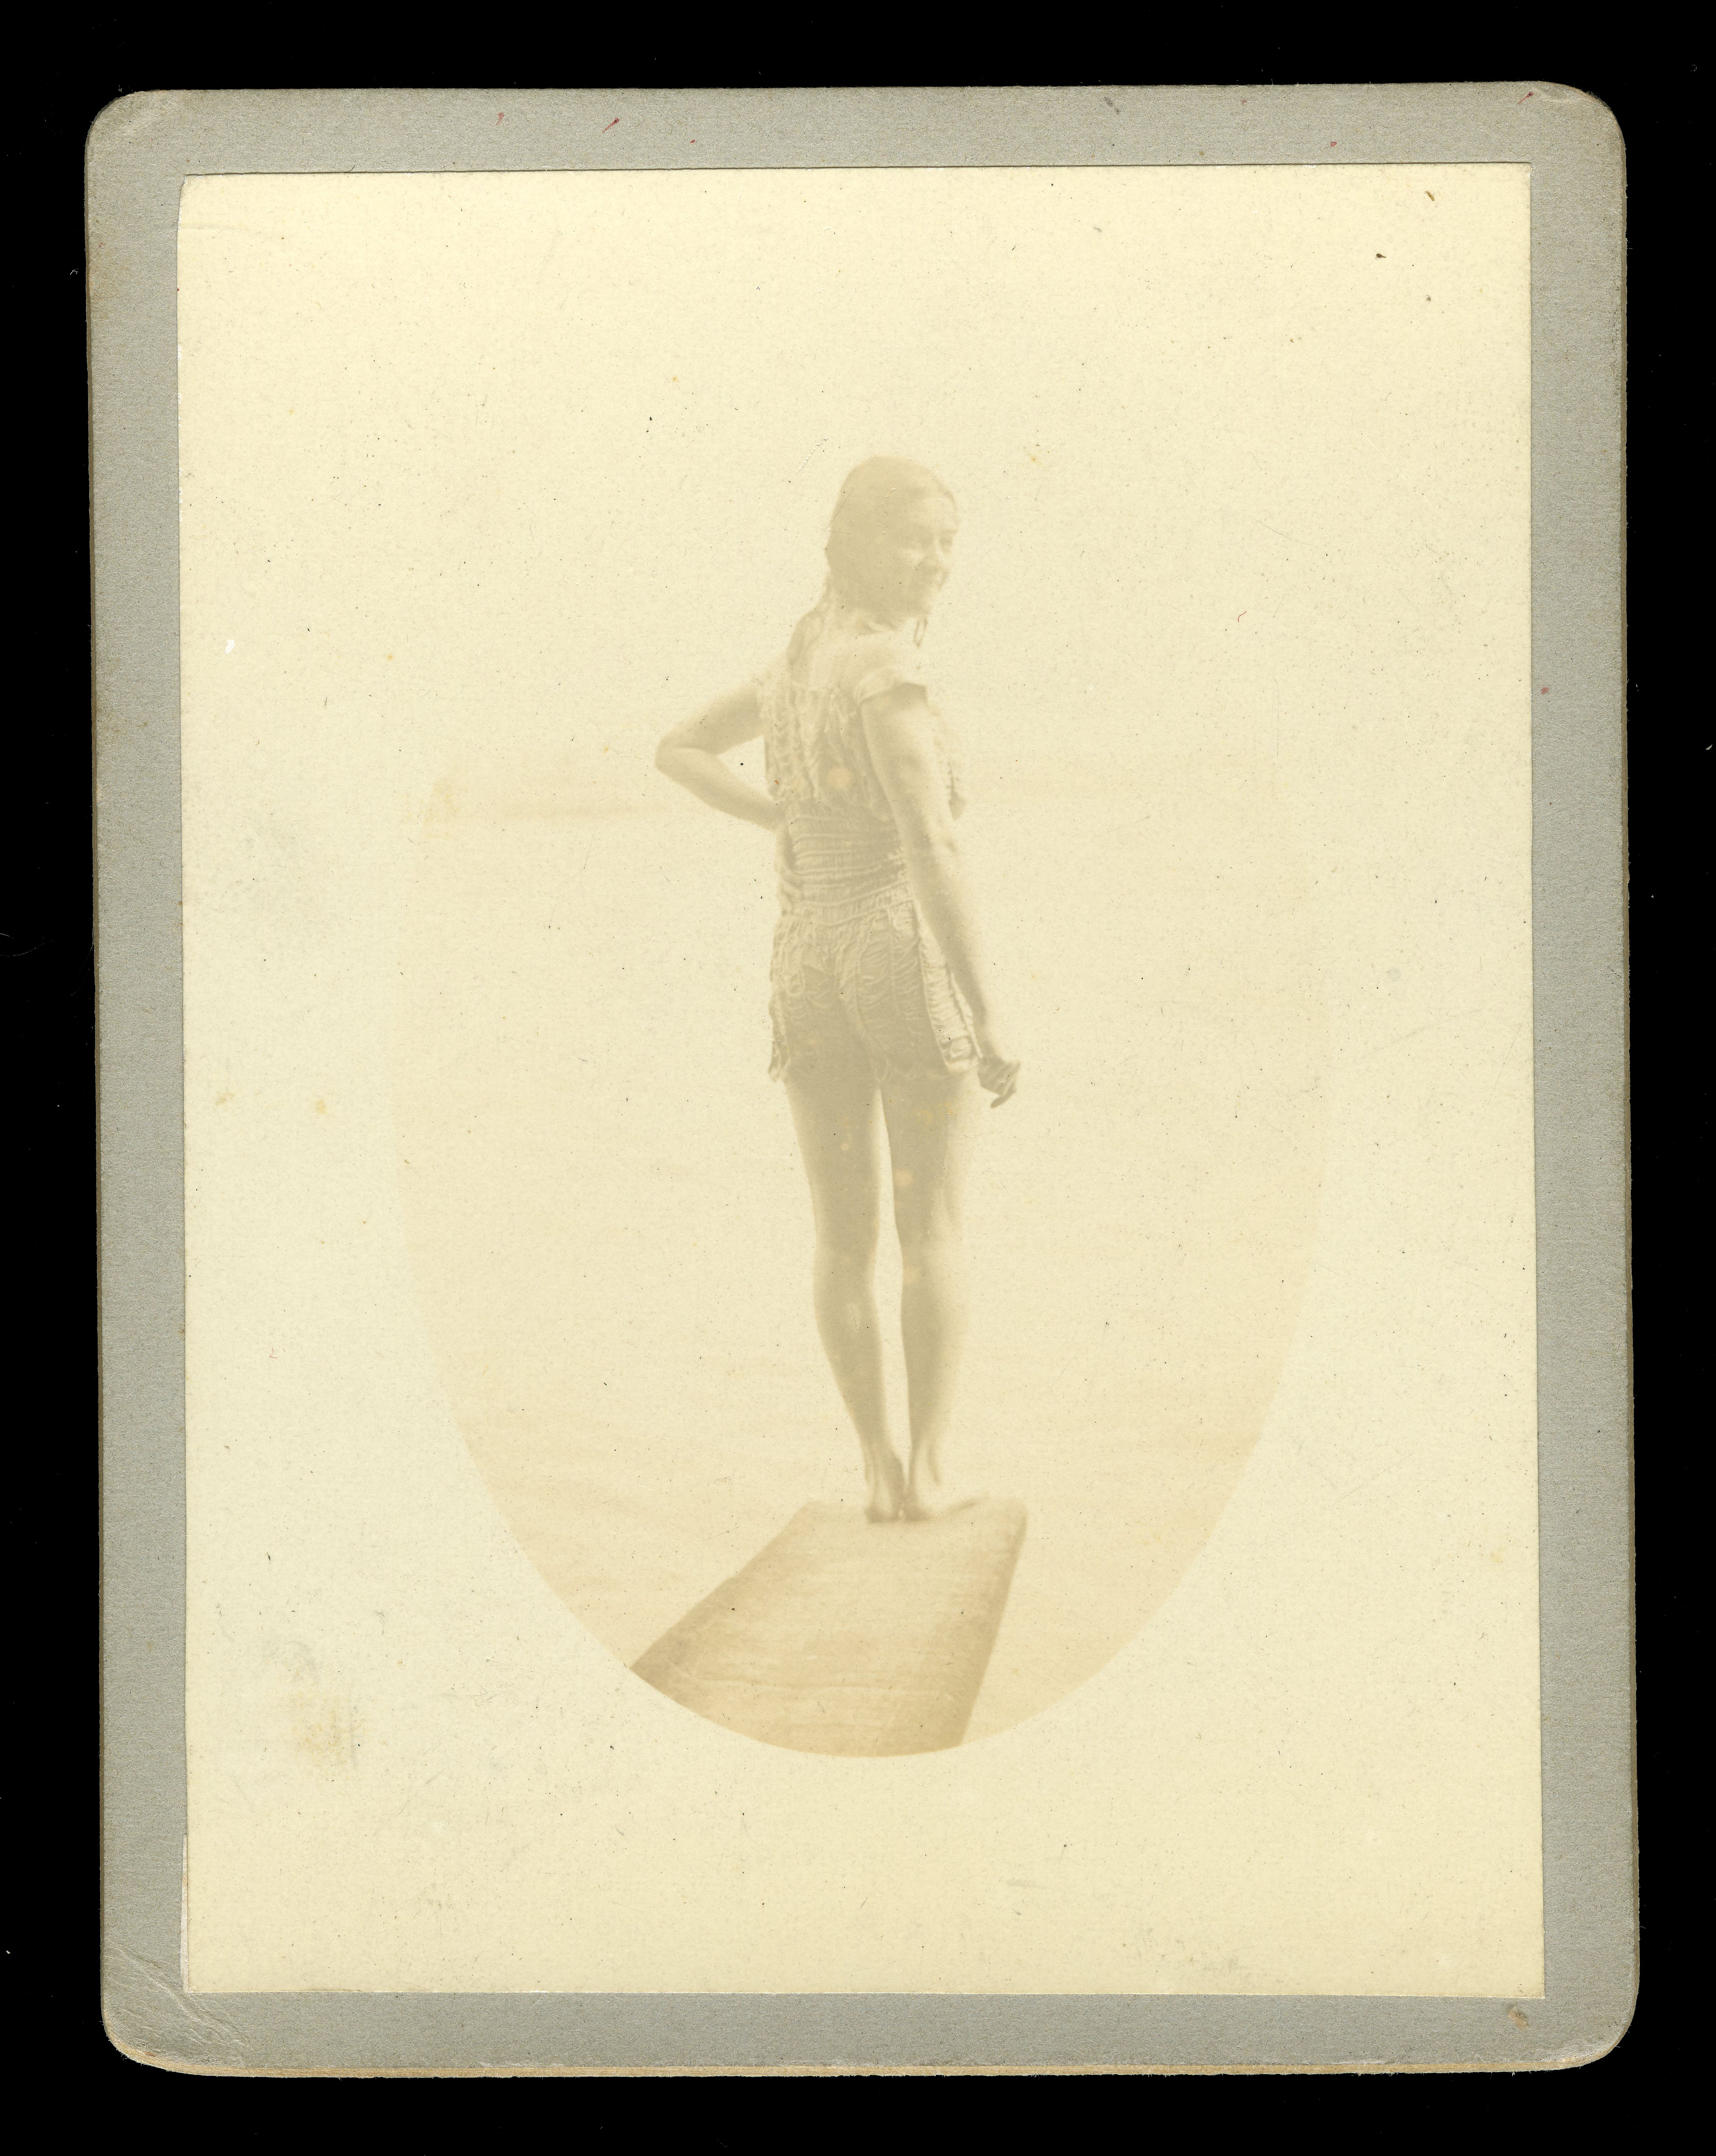 Photograph of Beatrice Kerr standing on a diving board